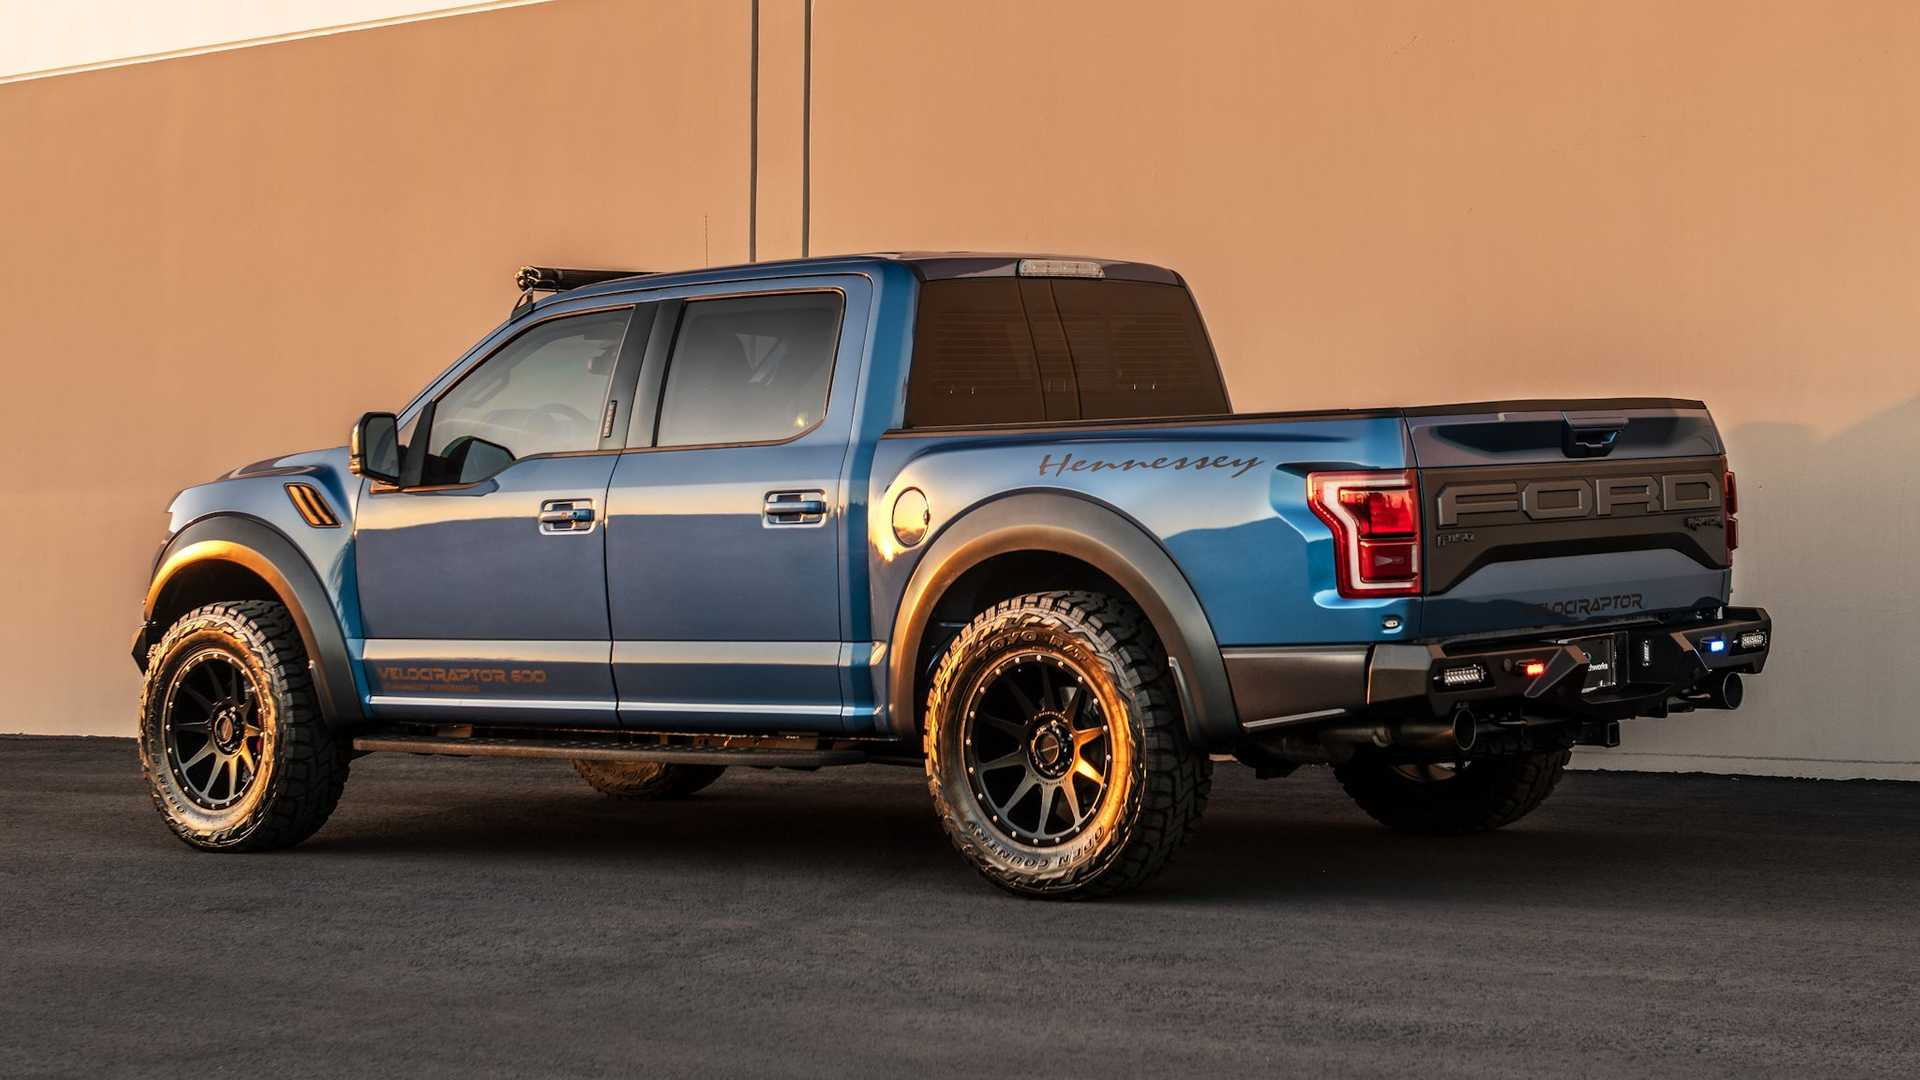 This 600hp armored Hennessey VelociRaptor V8 is the ultimate insane